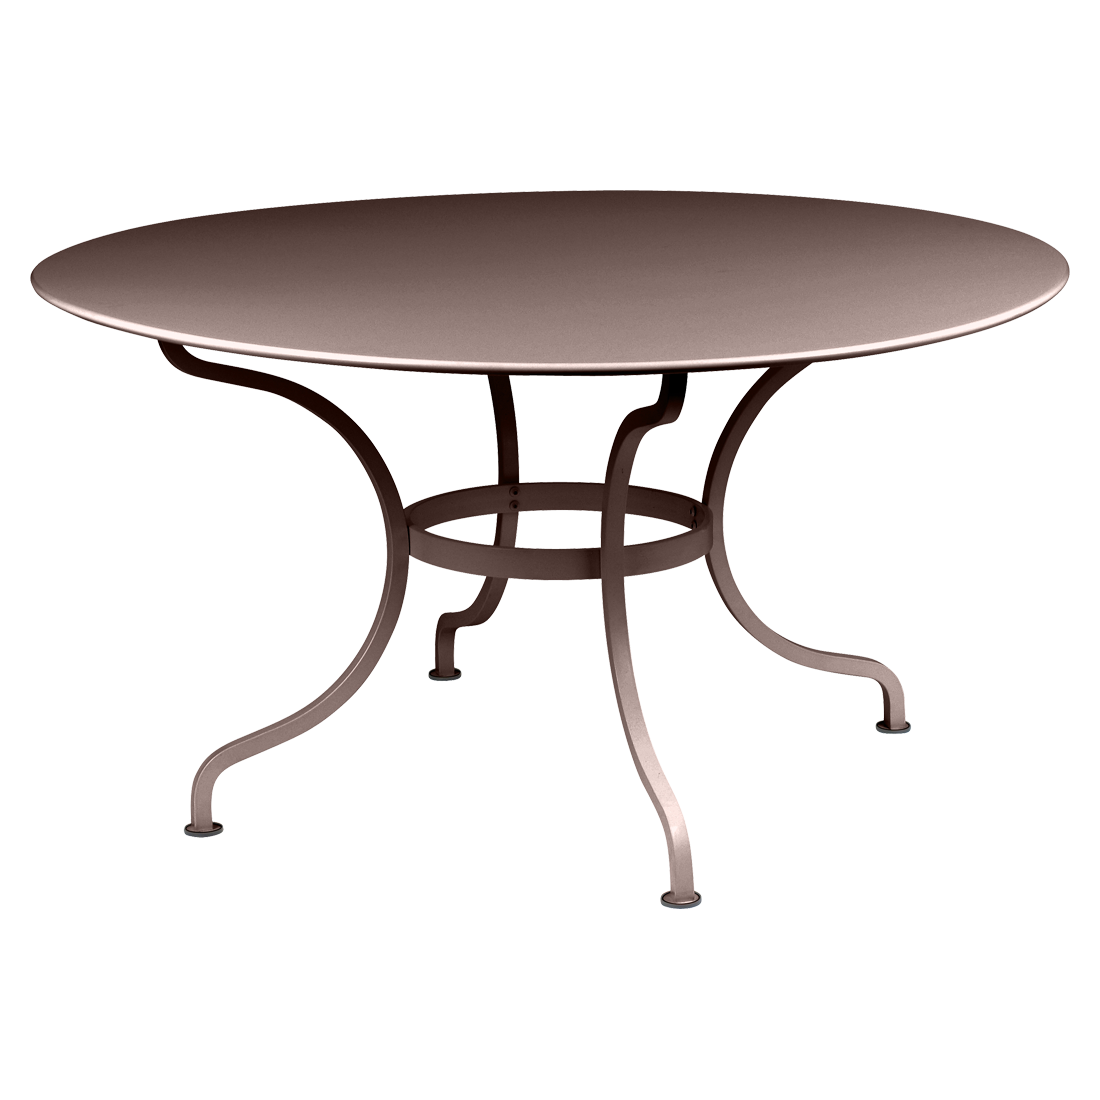 table ronde 137 cm romane table de jardin mobilier de jardin. Black Bedroom Furniture Sets. Home Design Ideas